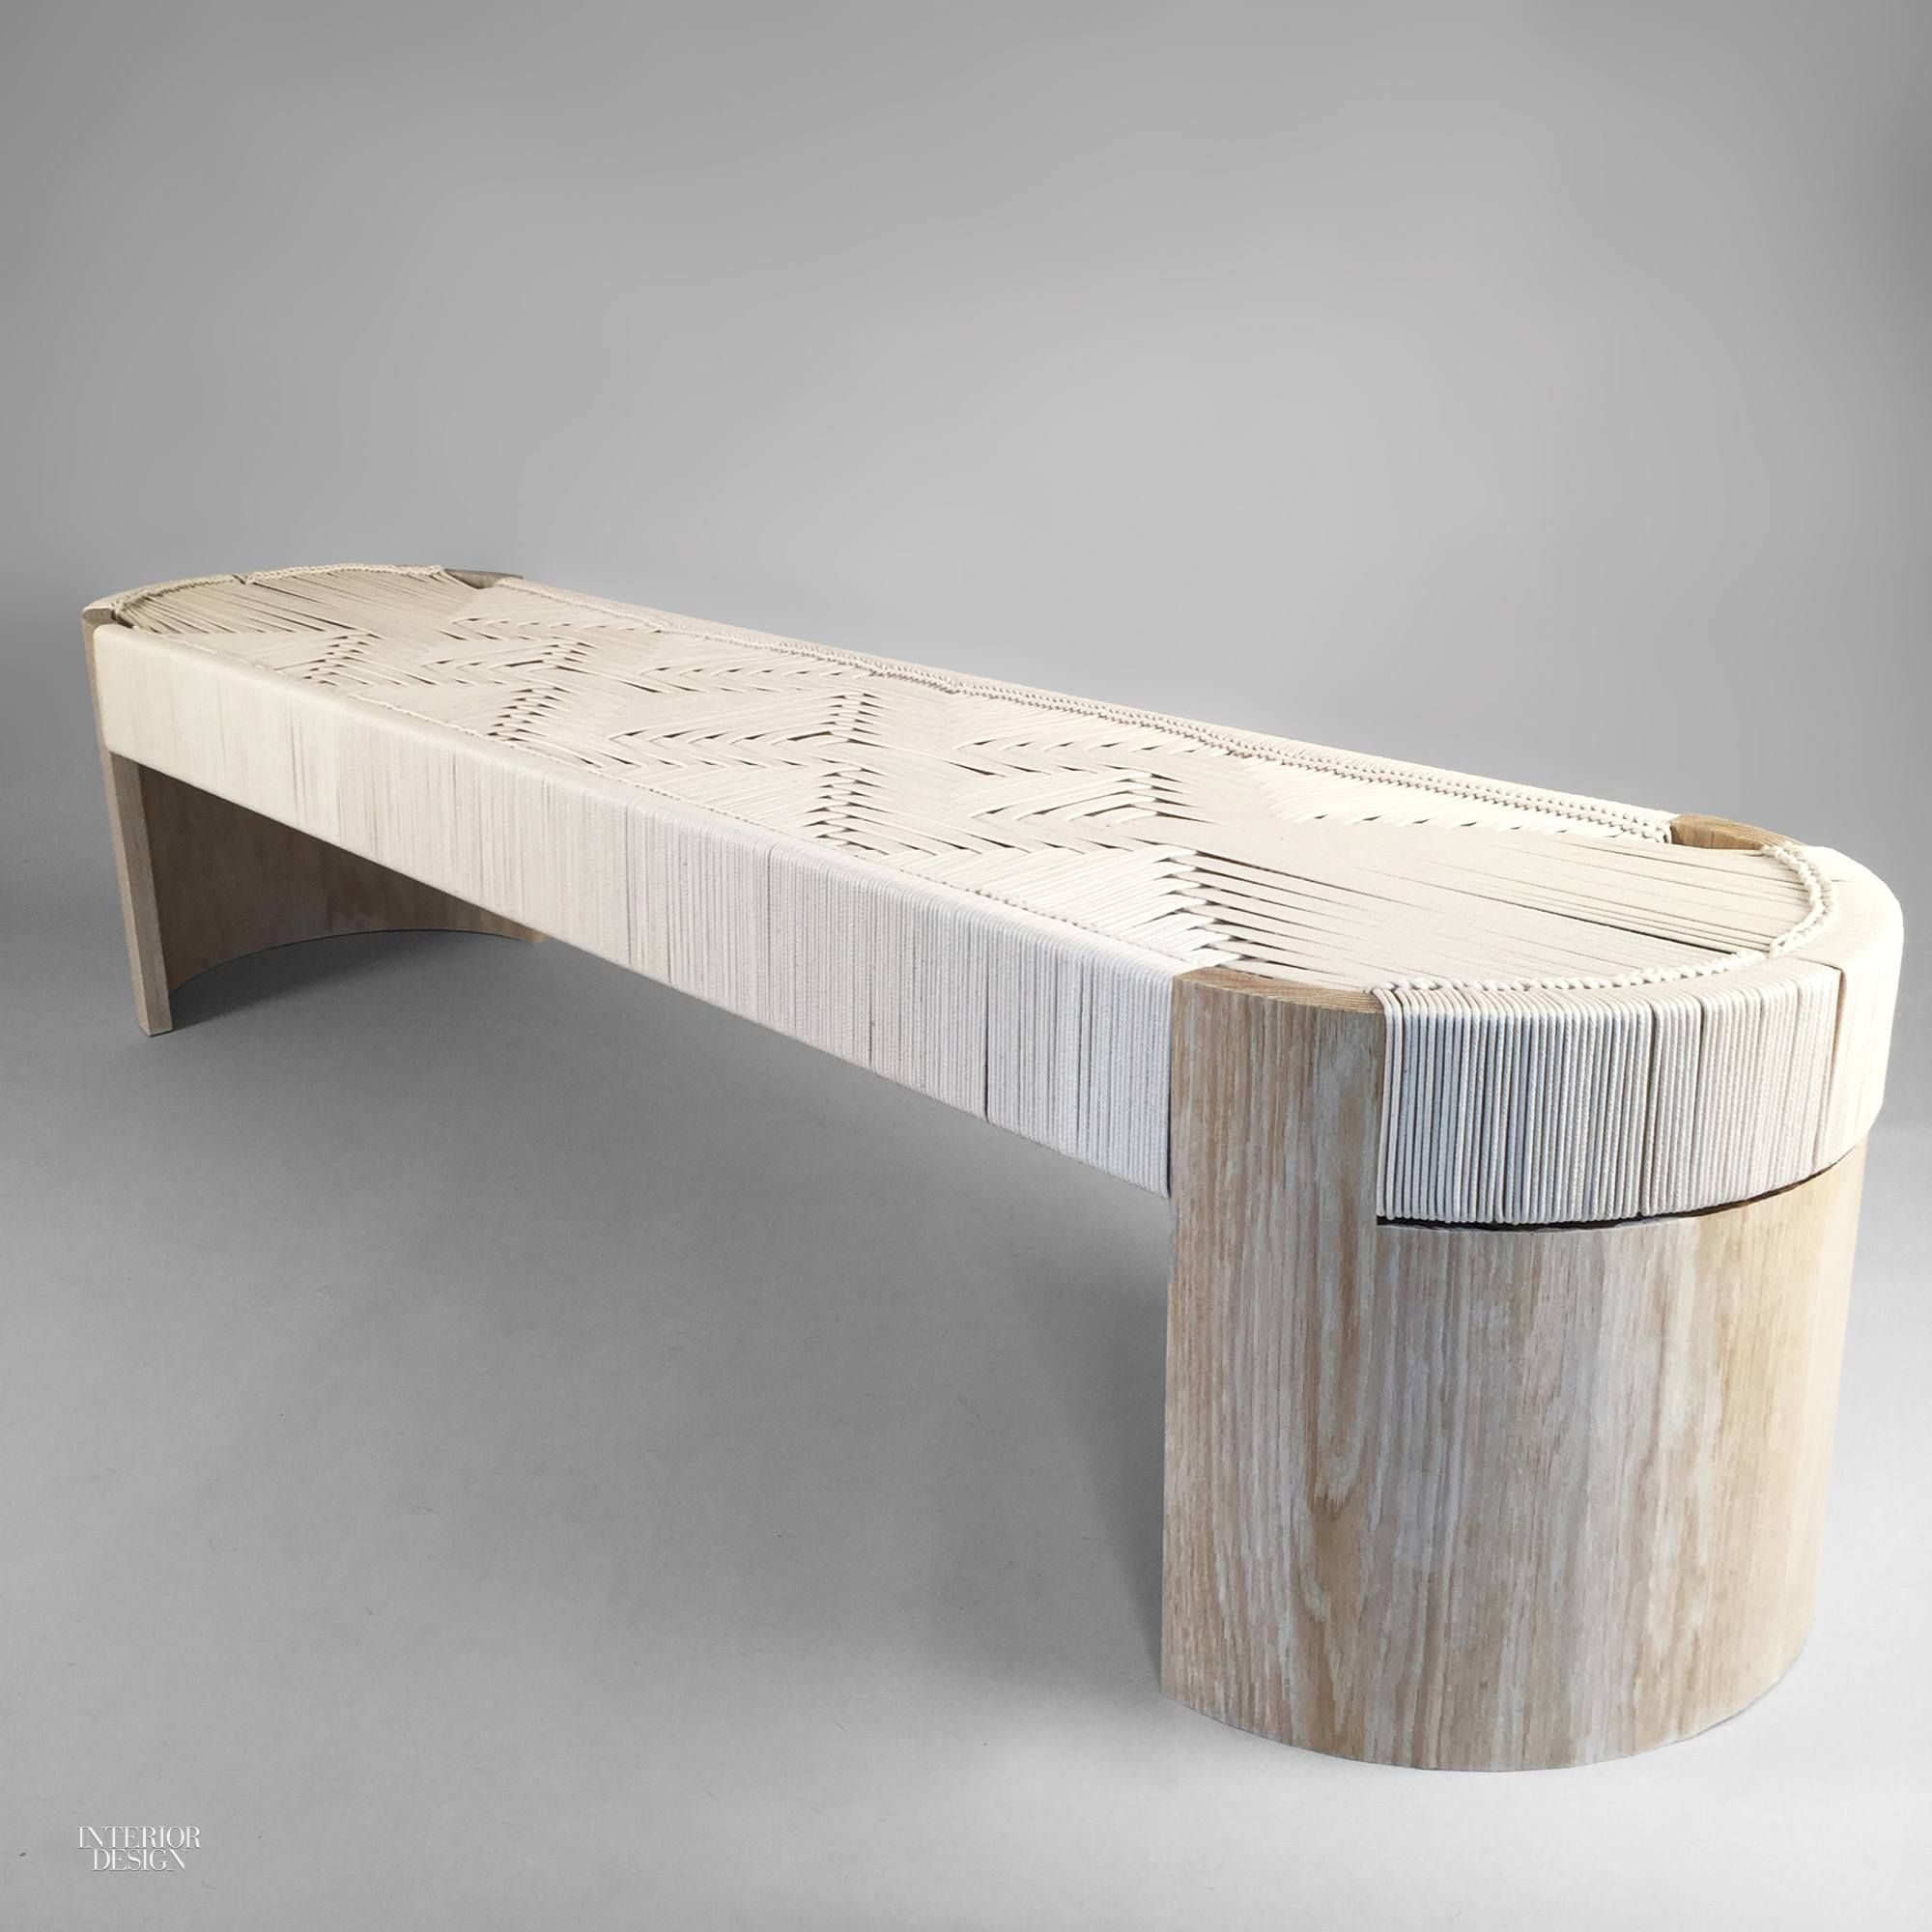 Lovely Define Bench Part - 11: Eclectic Materials Define 9 New Benches